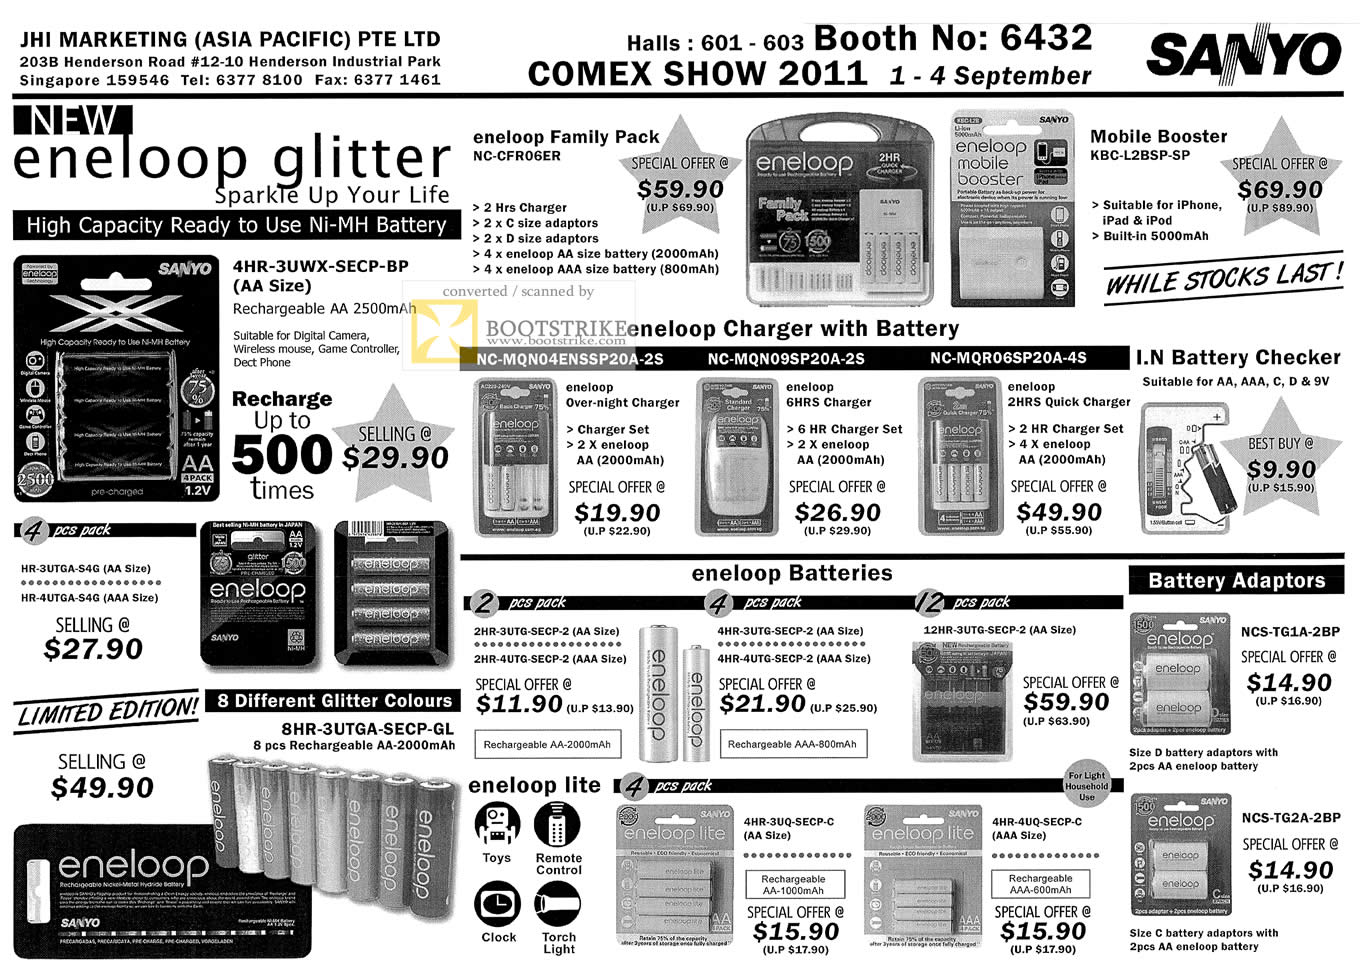 COMEX 2011 price list image brochure of JHI Sanyo Eneloop Glitter Battery Charger Adapter Checker Lite Ni-MH